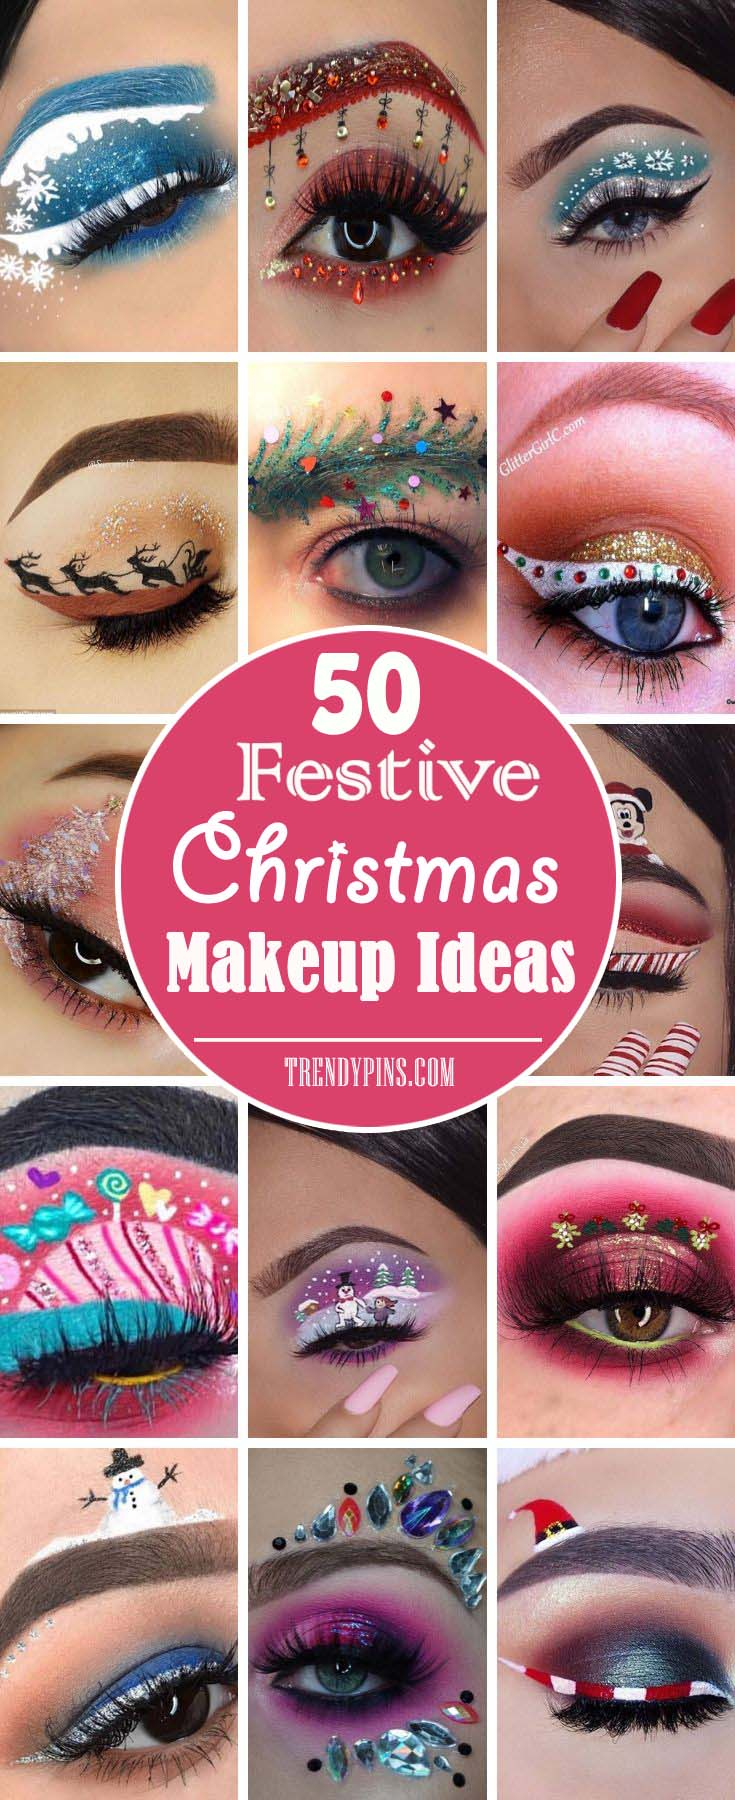 50 Festive Christmas Makeup Ideas for Beauty Lovers , Trendy